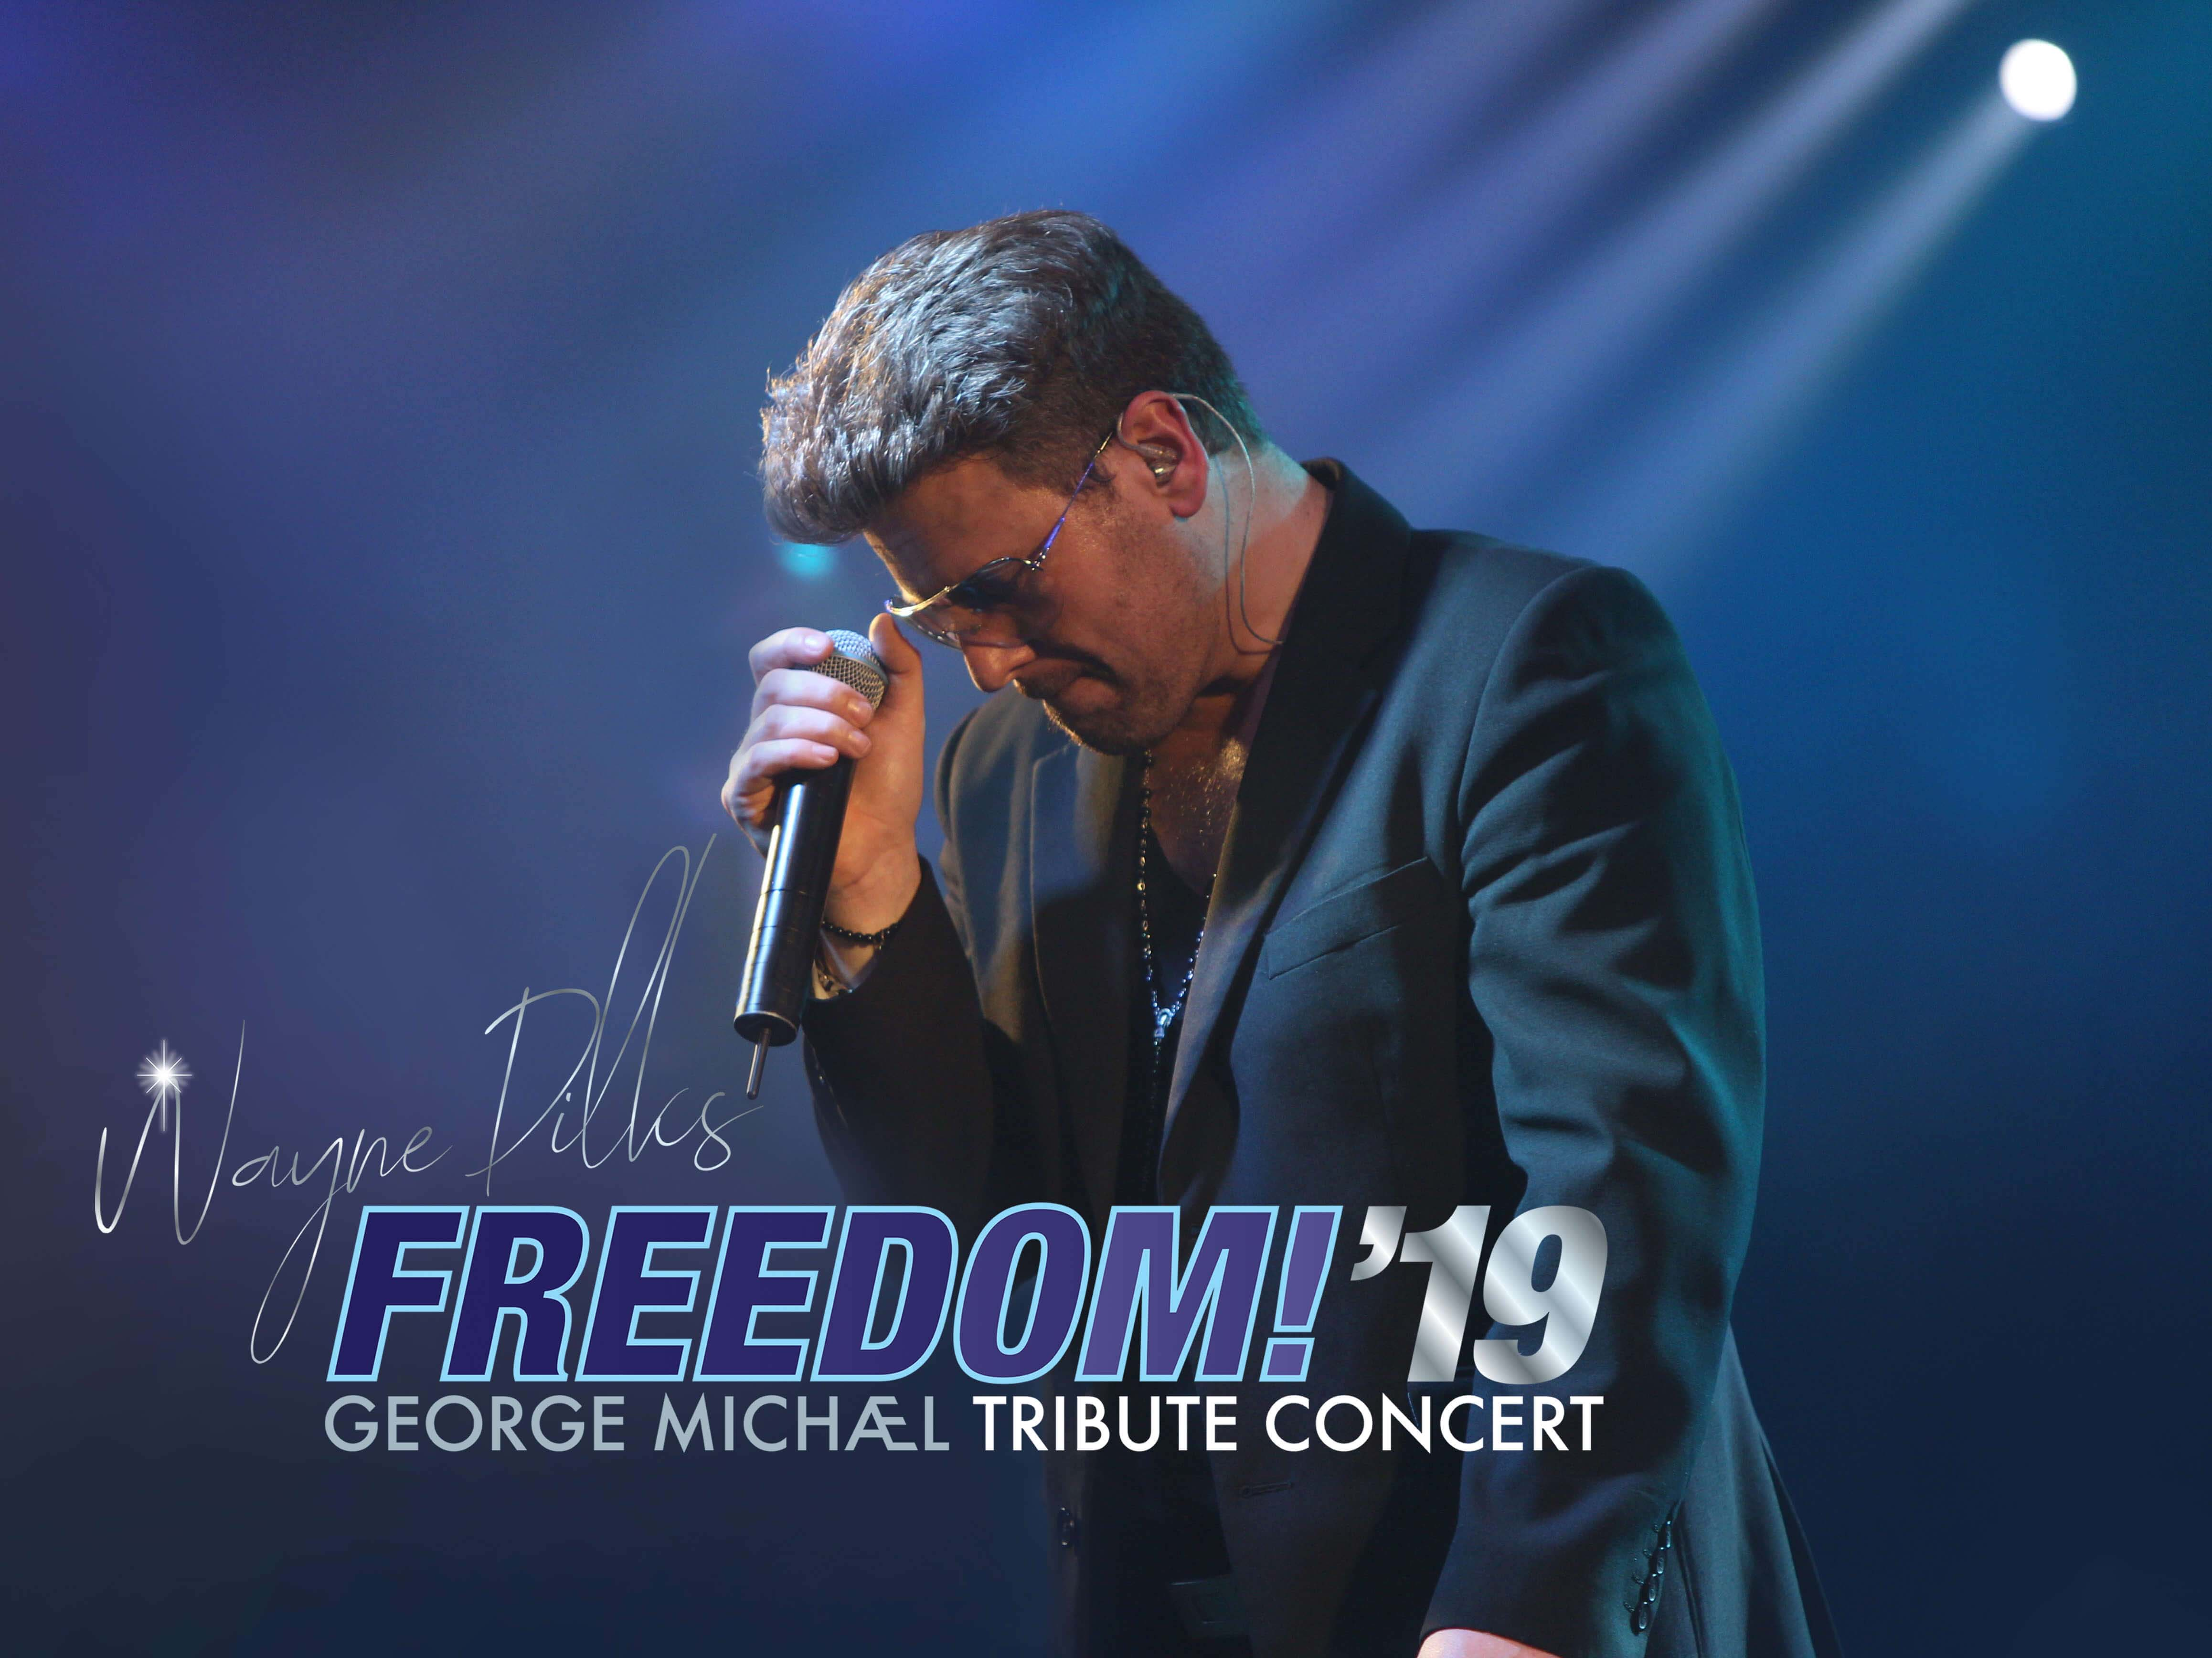 Freedom!'19 George Michael Tribute Concert Featuring Wayne Dilks banner image